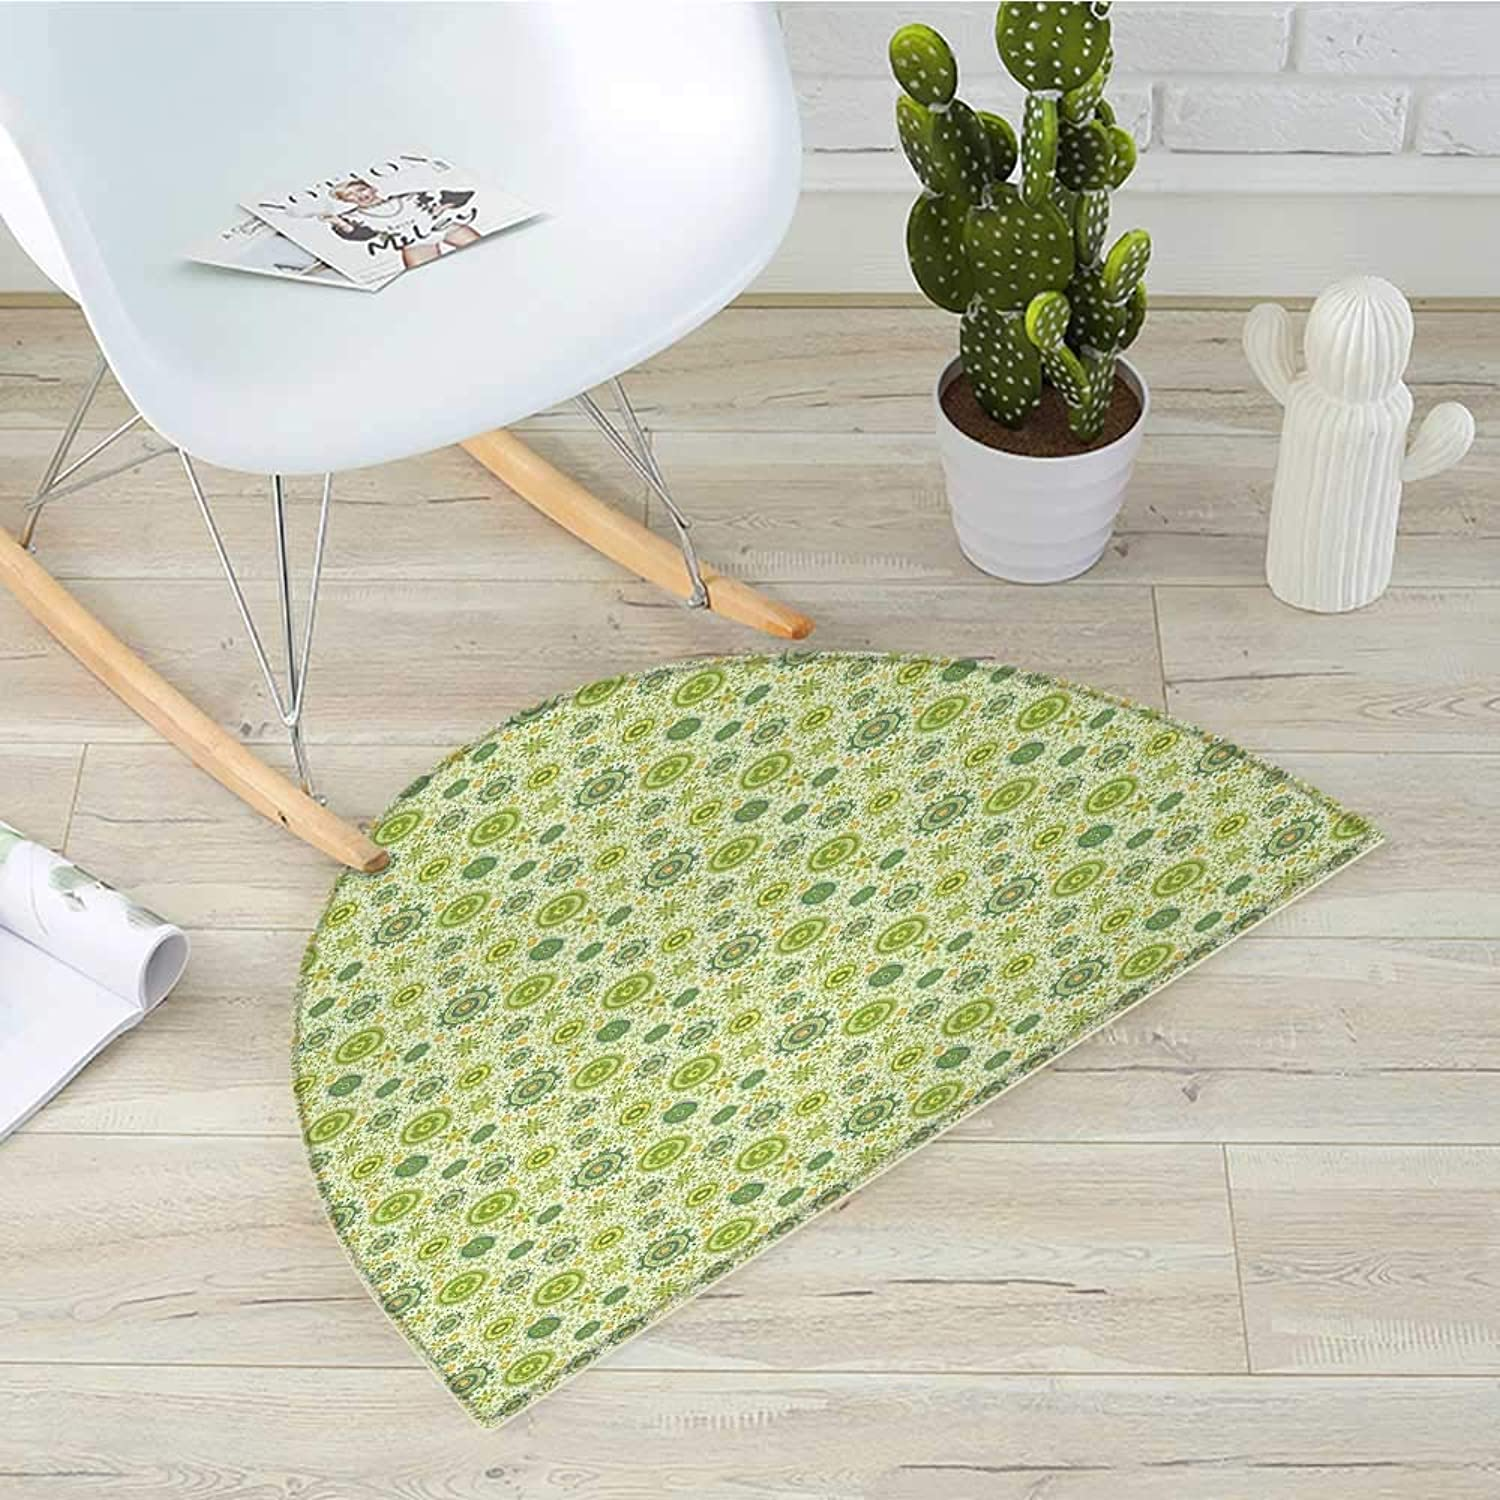 Floral Semicircle Doormat Abstract Flourish Inspired by Blossoming Nature of Gentle Spring Halfmoon doormats H 51.1  xD 76.7  Apple Green Cadet bluee Yellow